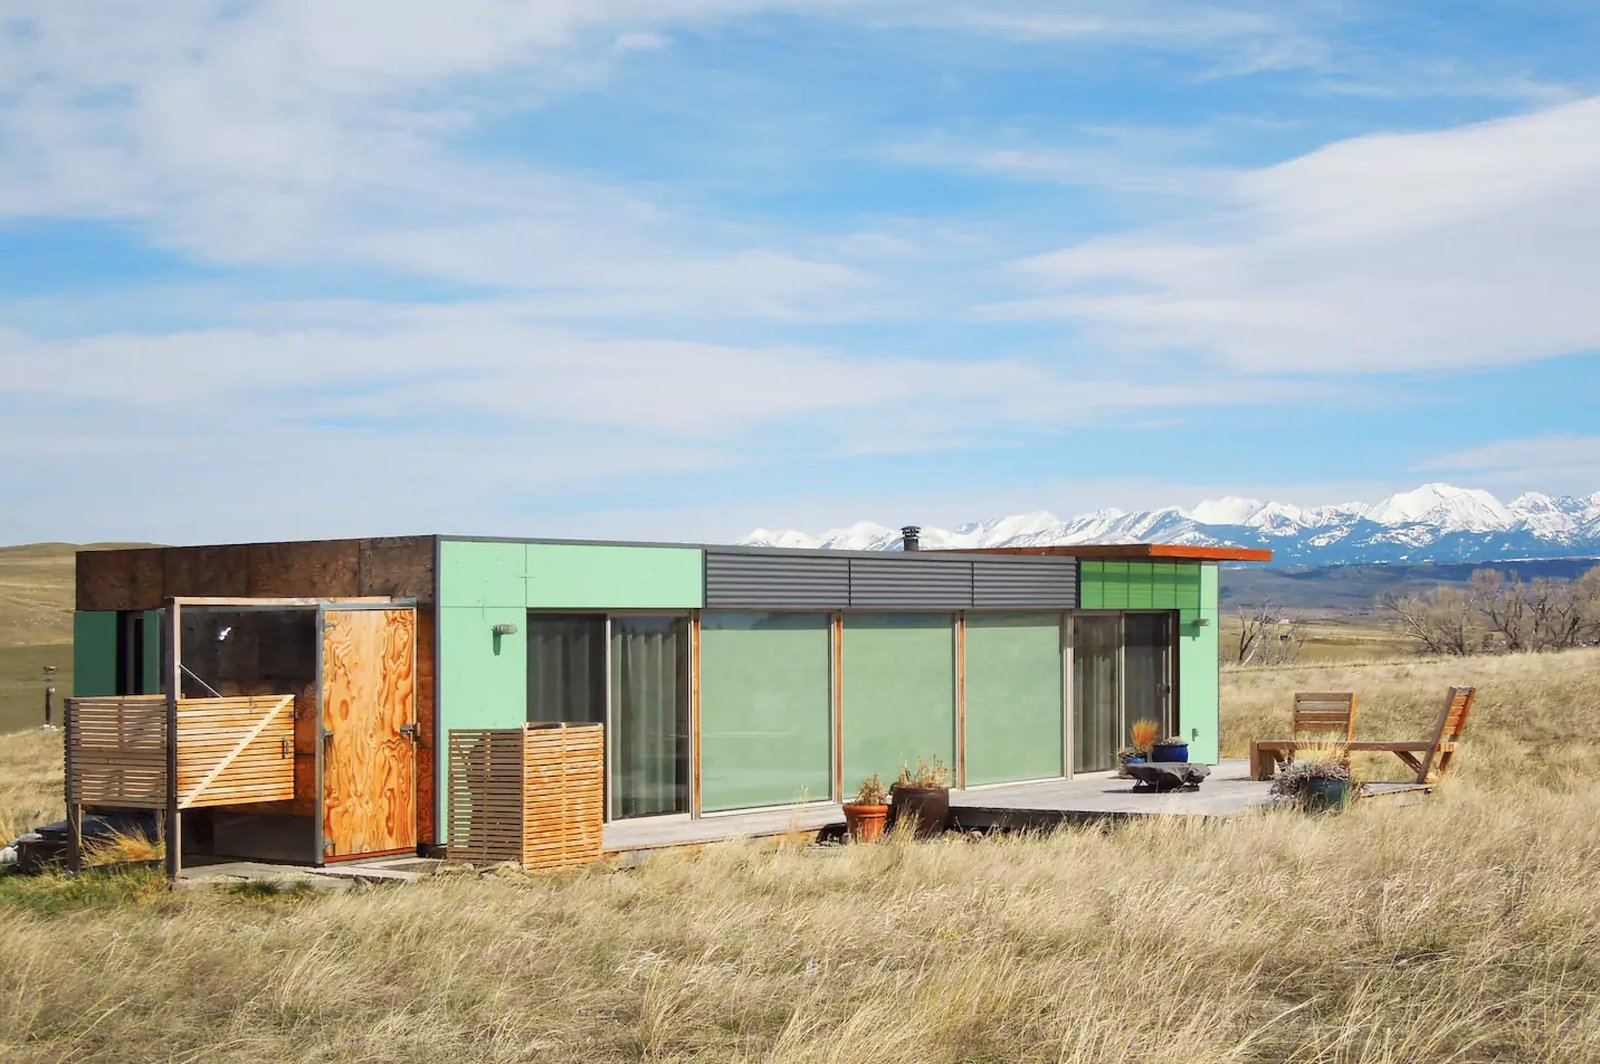 """Shipping Container Home Livingston, MT, United States  Welcome to the """"Little Box on the Prairie"""". This unique, modern house is made from two recycled shipping containers, situated on 10-acres of rolling prairie, just North of Livingston Montana. It's a 700 square-foot mix of rustic coziness and clean, modern design. Many of the finishes such as the redwood flooring and plywood wall panels were salvaged off site, recycled and reused. The outside deck is perfect for chatting over morning coffee, an evening glass of wine, gazing at the Absaroka Mountains and likely spotting a deer or antelope. The house comfortably sleeps 2, and a 3rd can sleep on the sofa if needed.  https://www.airbnb.com/rooms/3292920  Amazing Examples of Shipping Container Architecture by Diana Budds from Great Airbnbs"""